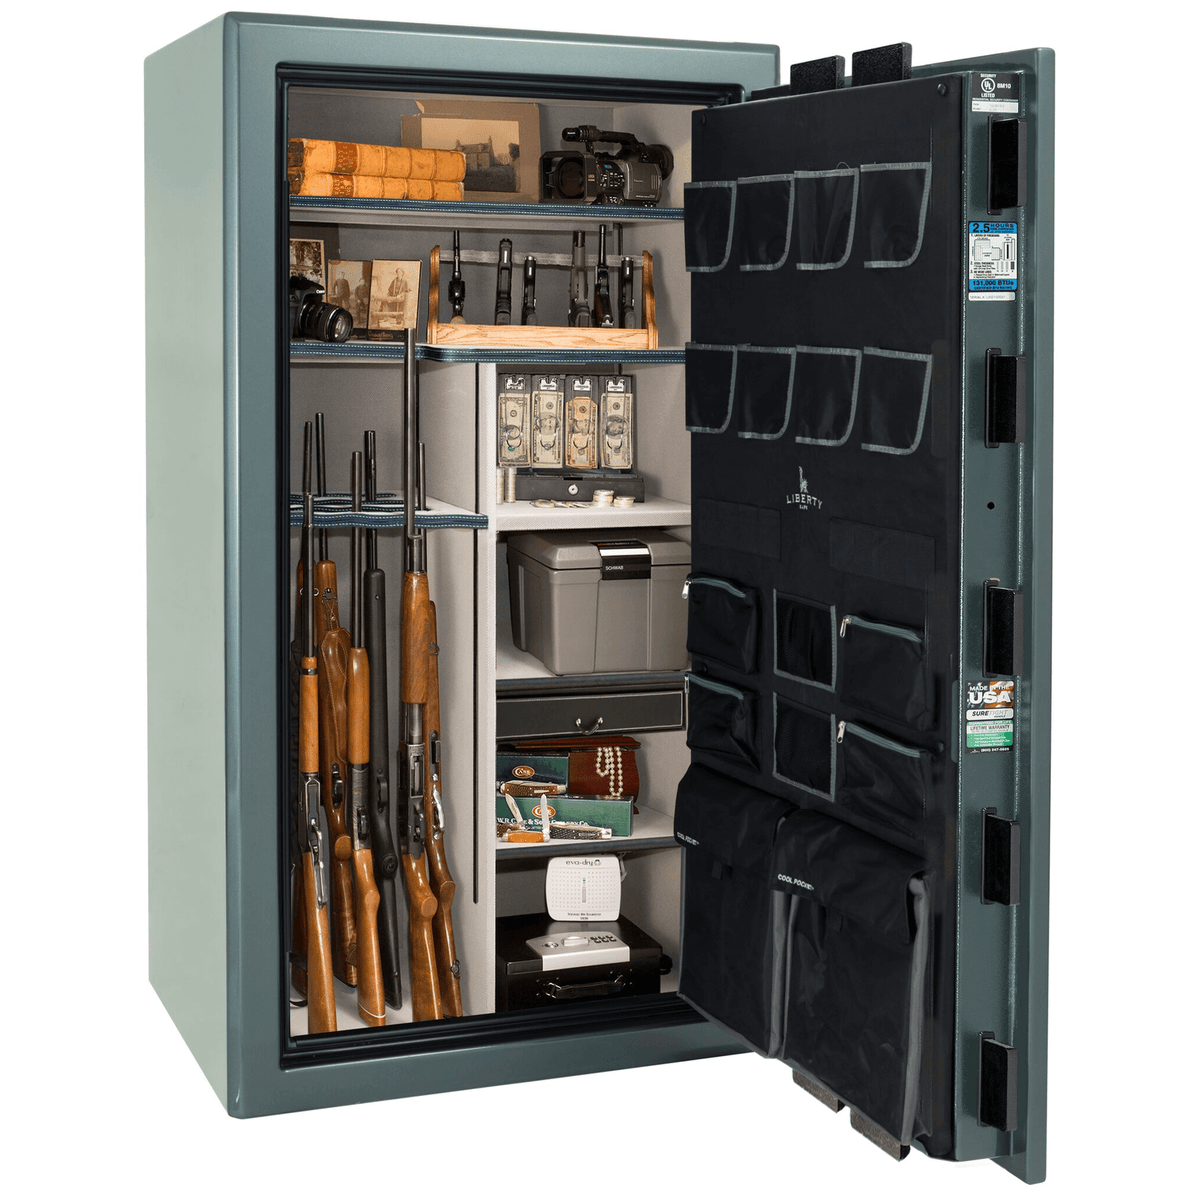 "Presidential | 40 | Level 8 Security | 150 Minute Fire Protection | Forest Mist Gloss | Black Mechanical Lock | 65.5""(H) x 36""(W) x 32""(D)"